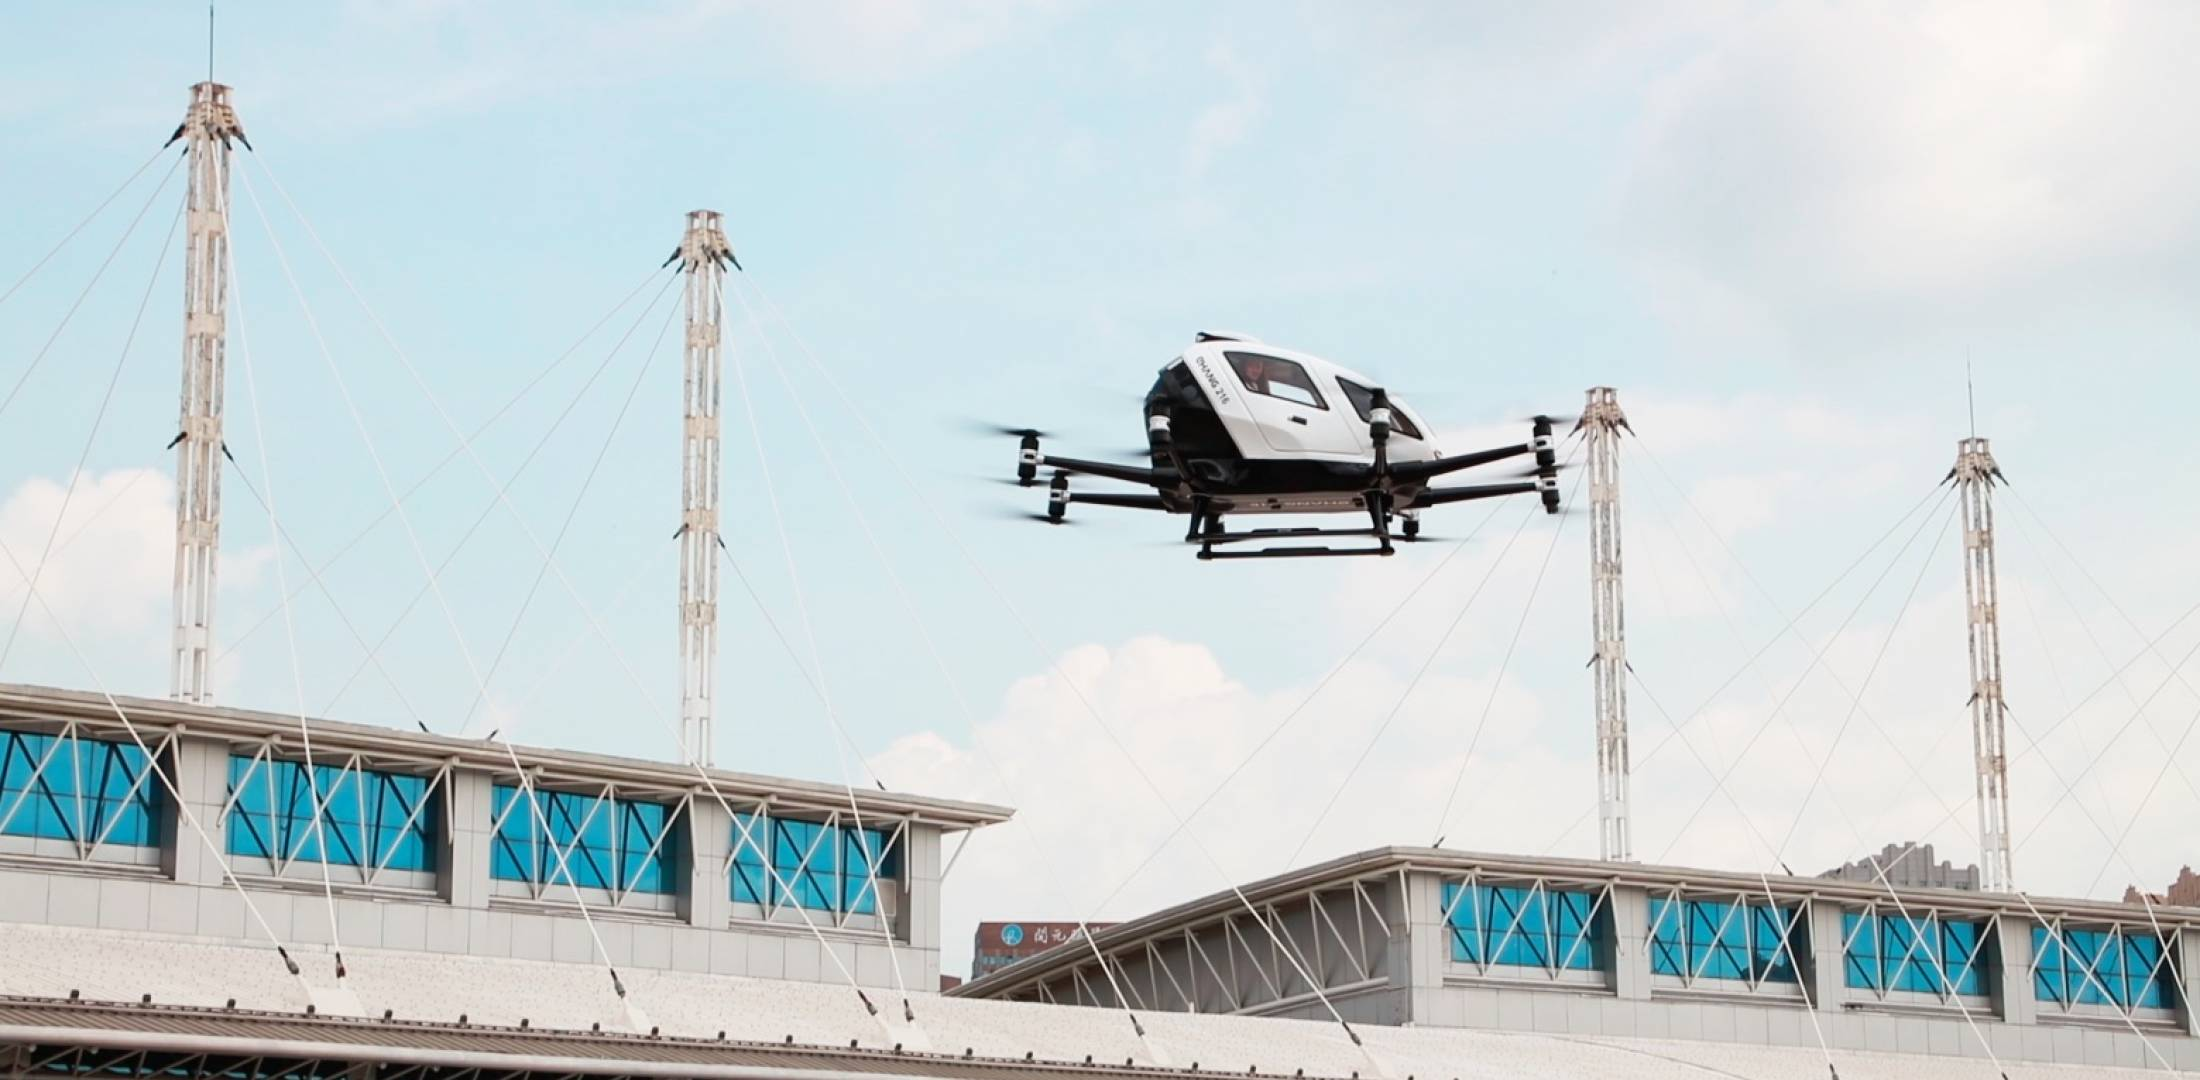 EHang's 216 Autonomous Aerial Vehicle